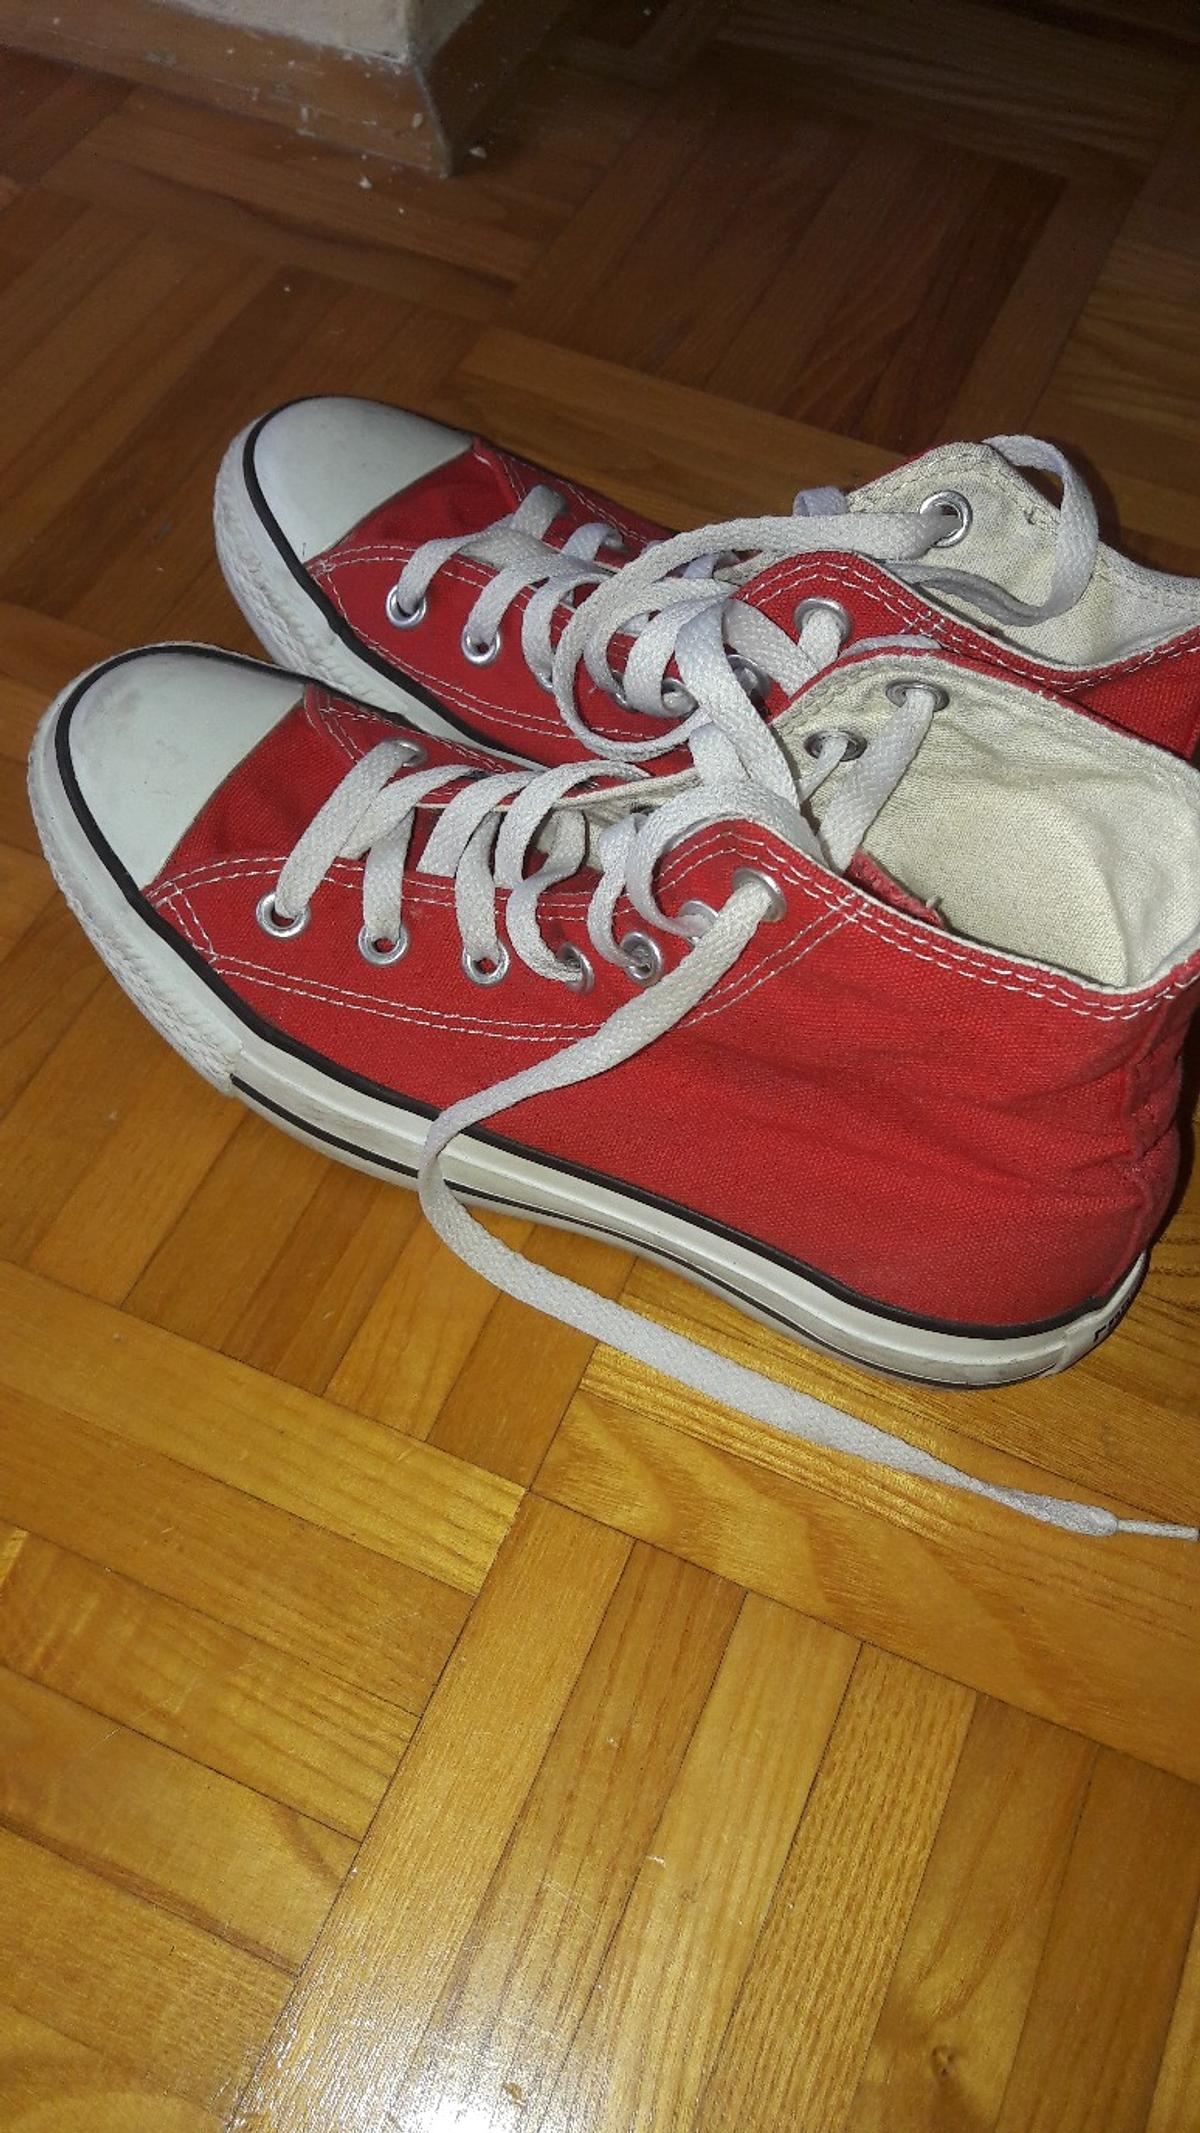 CONVERSE ALL☆STAR in 5020 Salzburg for €15.00 for sale - Shpock